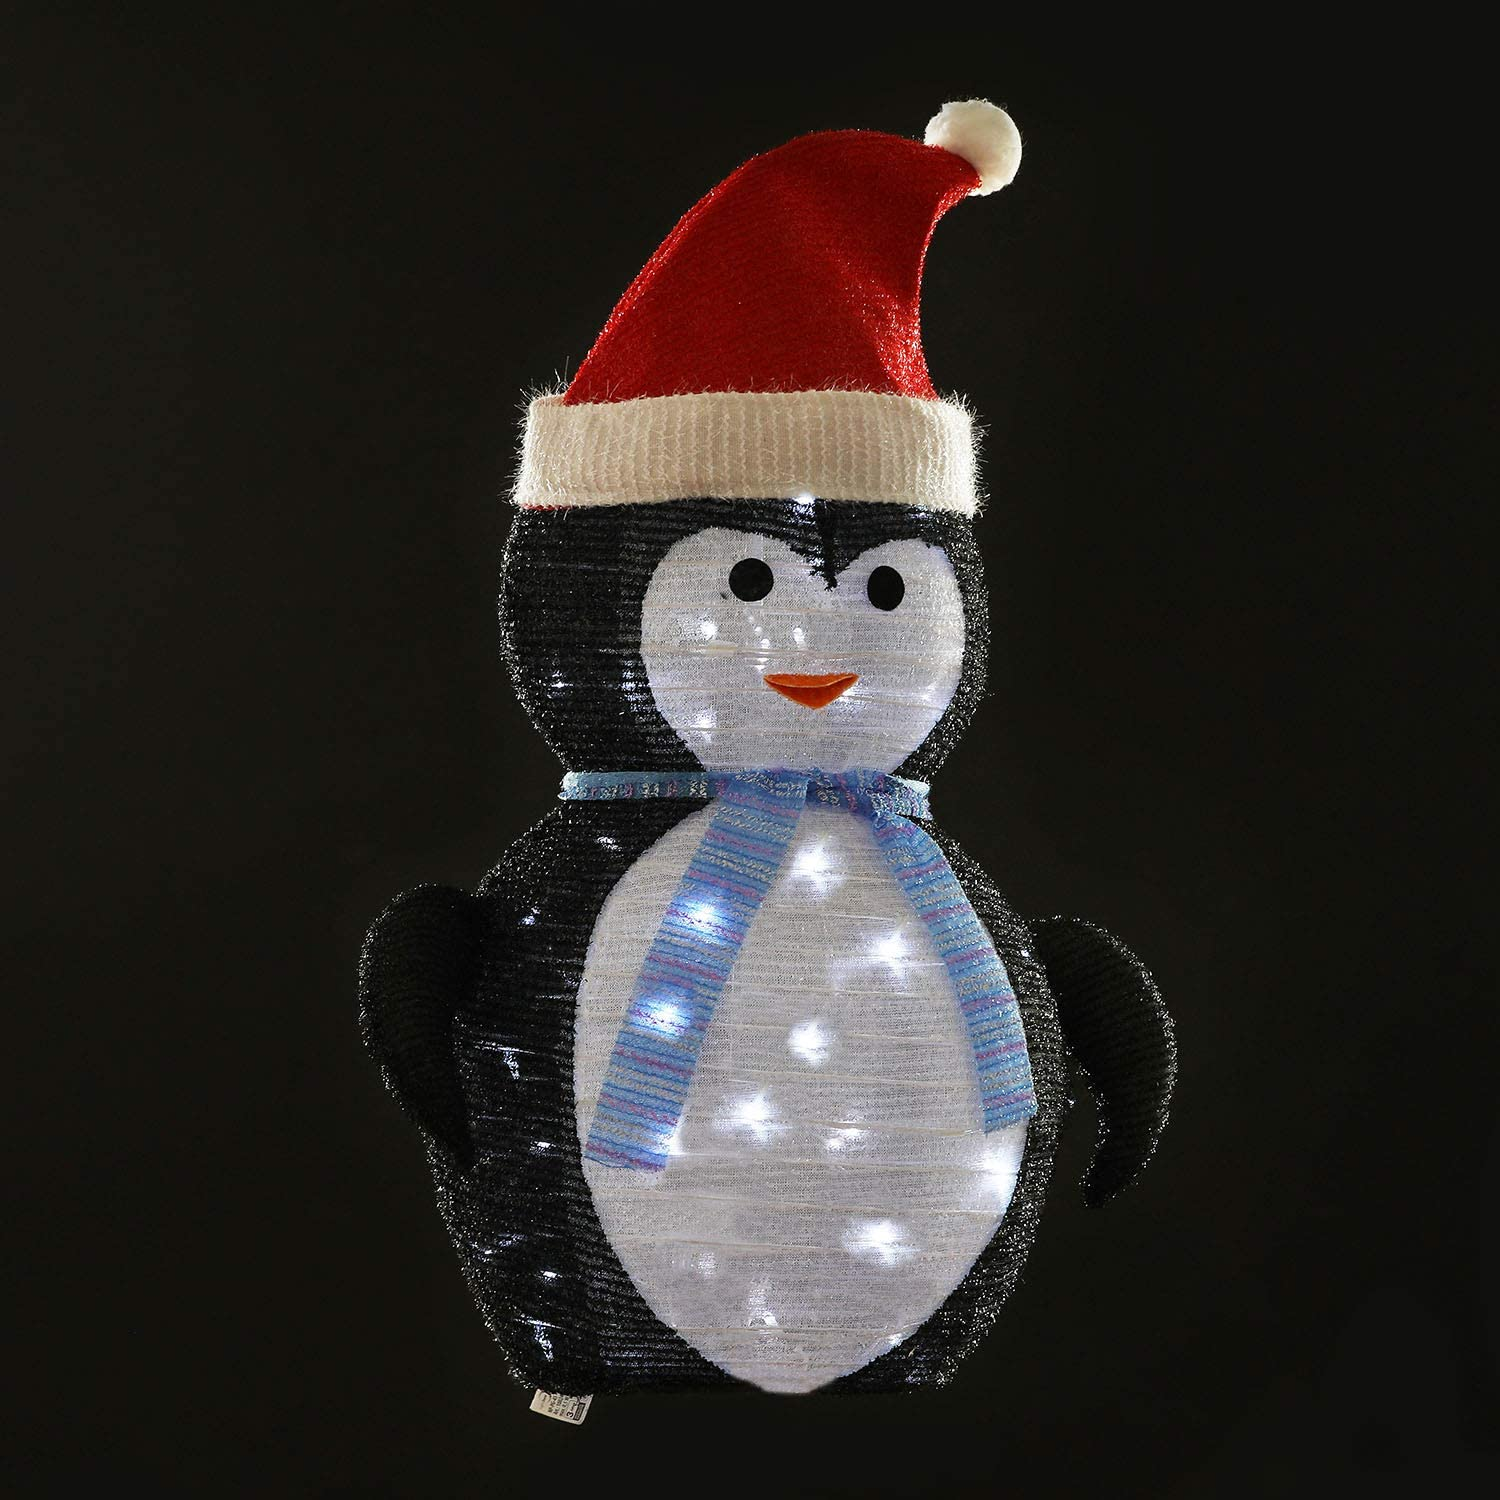 KPROE Portable Pre Lit LED Lighted Battery Operated Penguin Christmas Lawn Decoration Indoor Outdoor Holiday 27 5 Inches